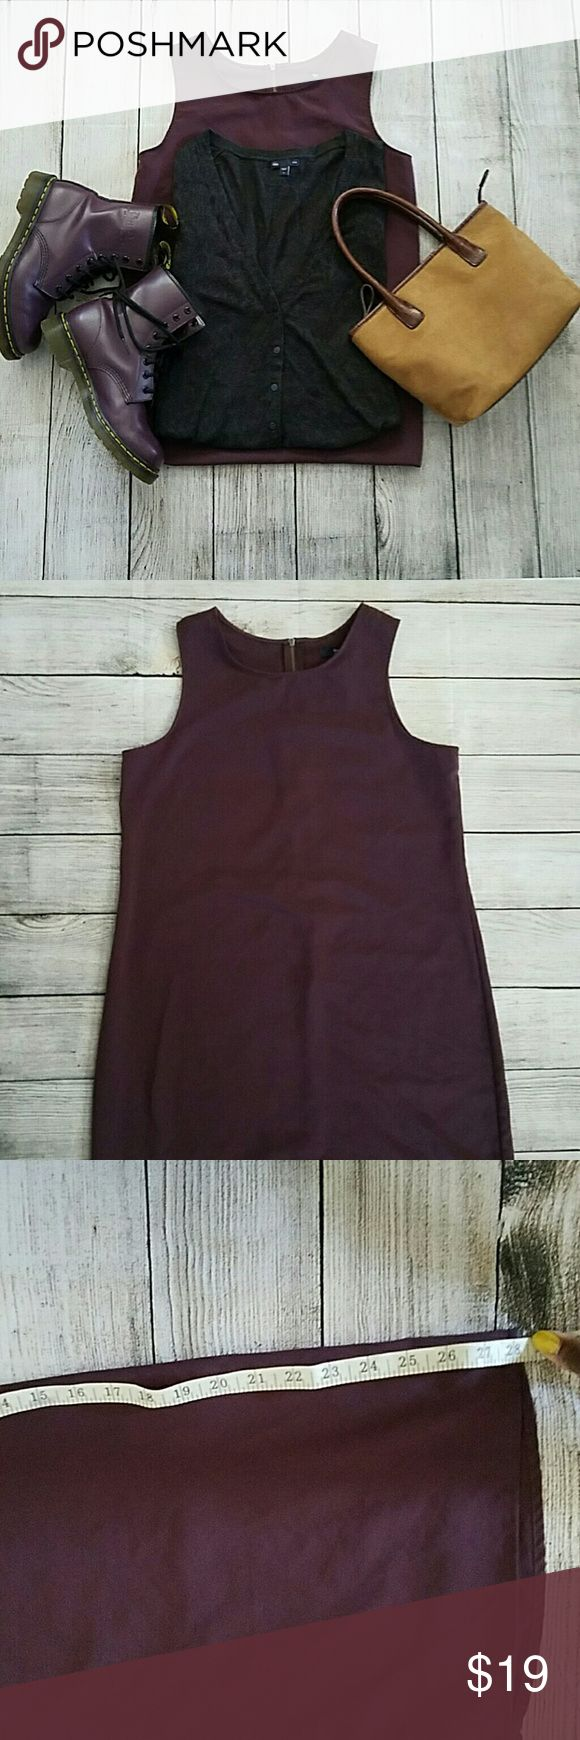 Plum Gap sleeveless sheath dress Gorgeous plum color sheath dress. A great closet staple for layering and business casual! GAP Dresses